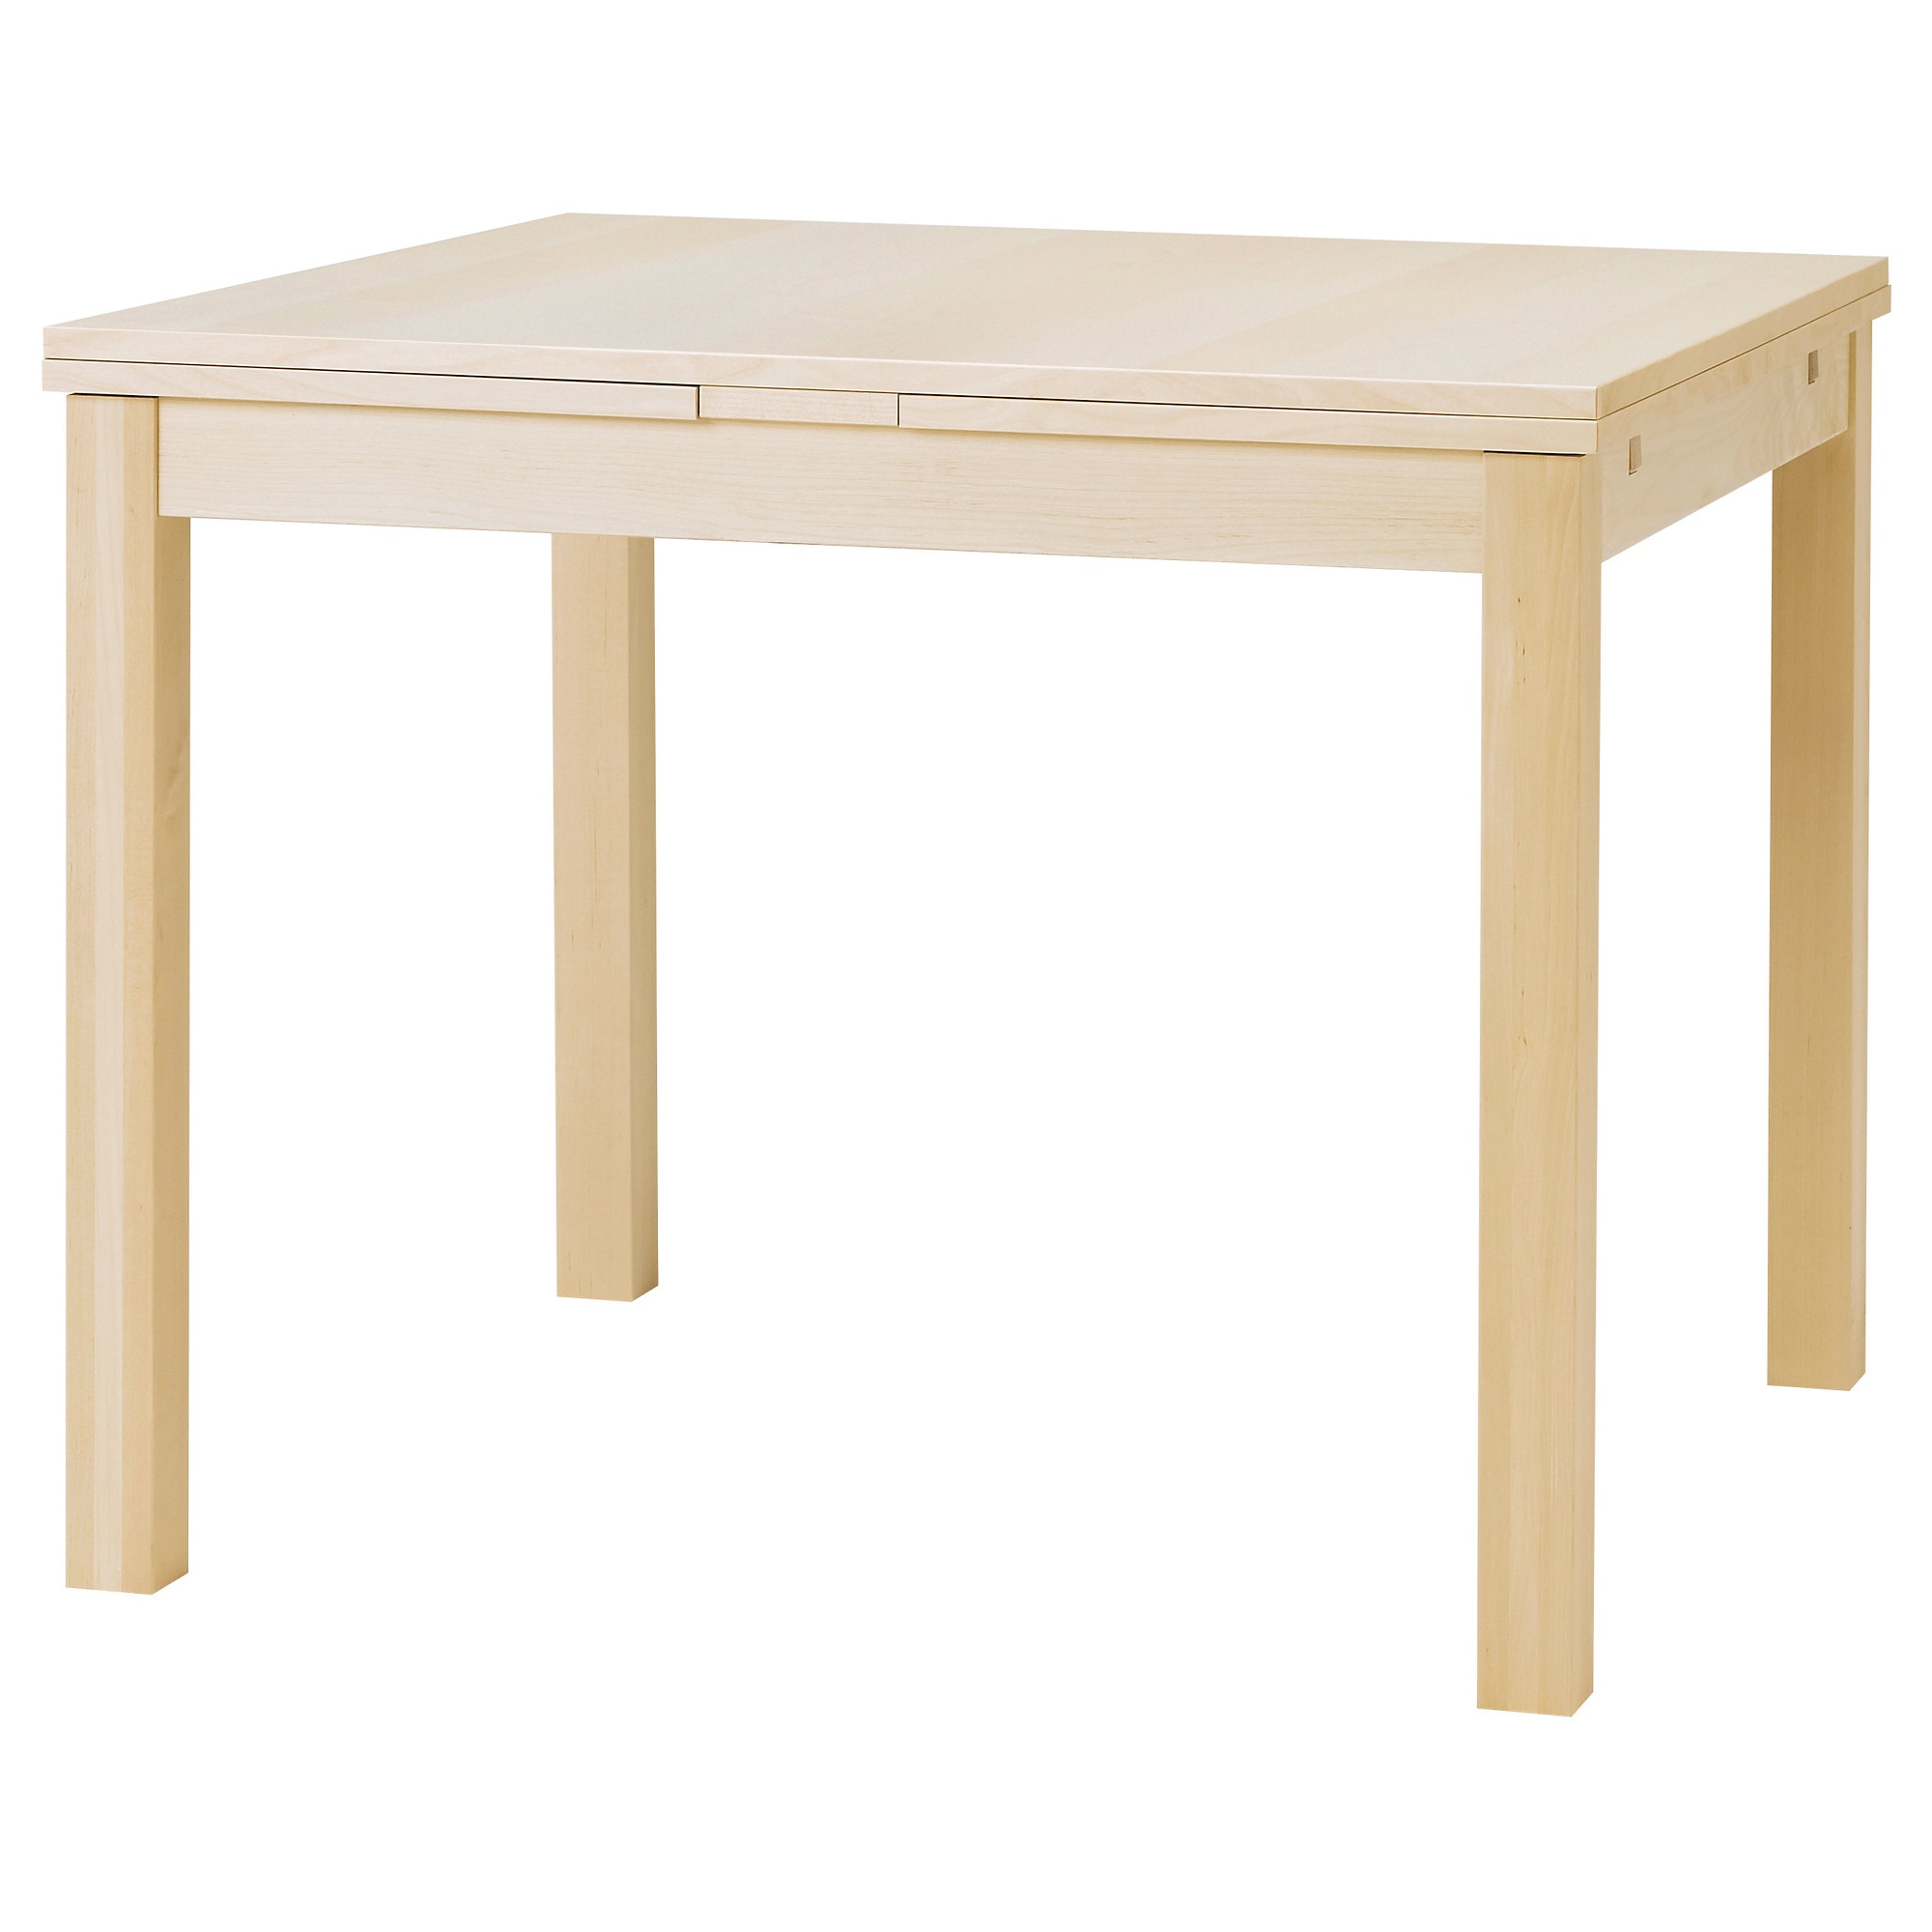 Ikea Folding Dining Table bjursta extendable table - birch veneer - ikea